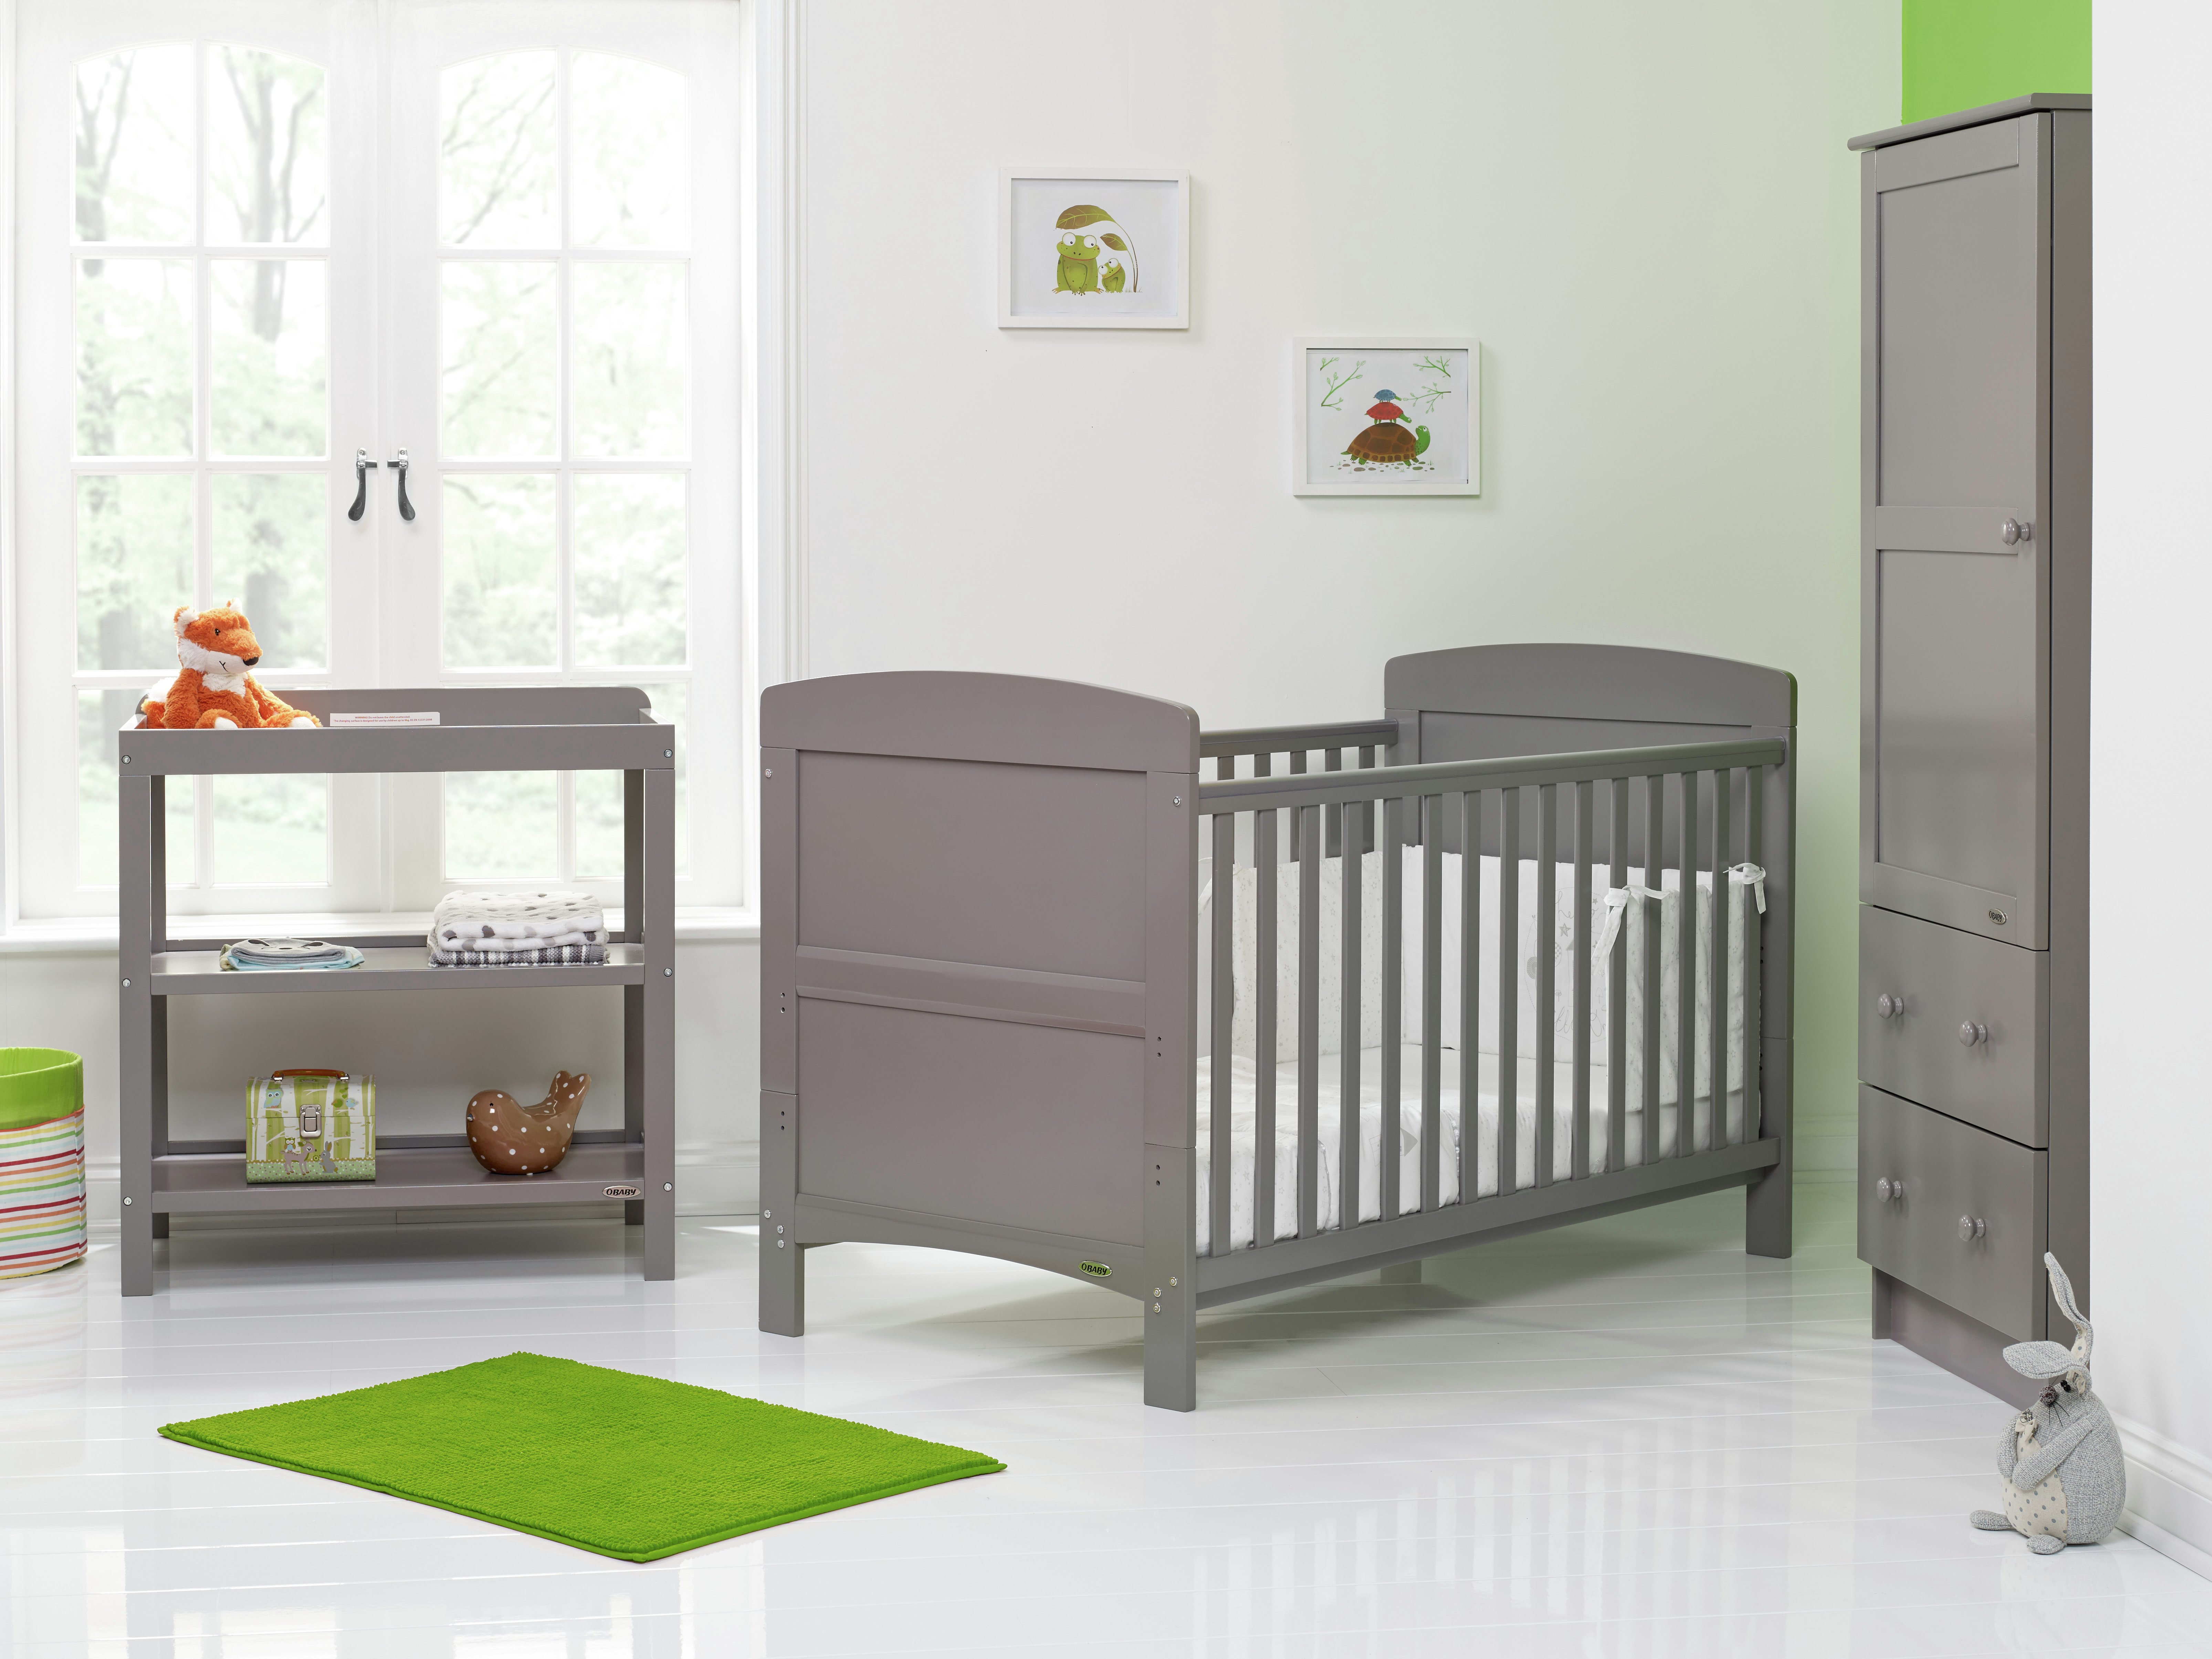 Obaby Grace 3 Piece Nursery Furniture Set - Taupe Grey.